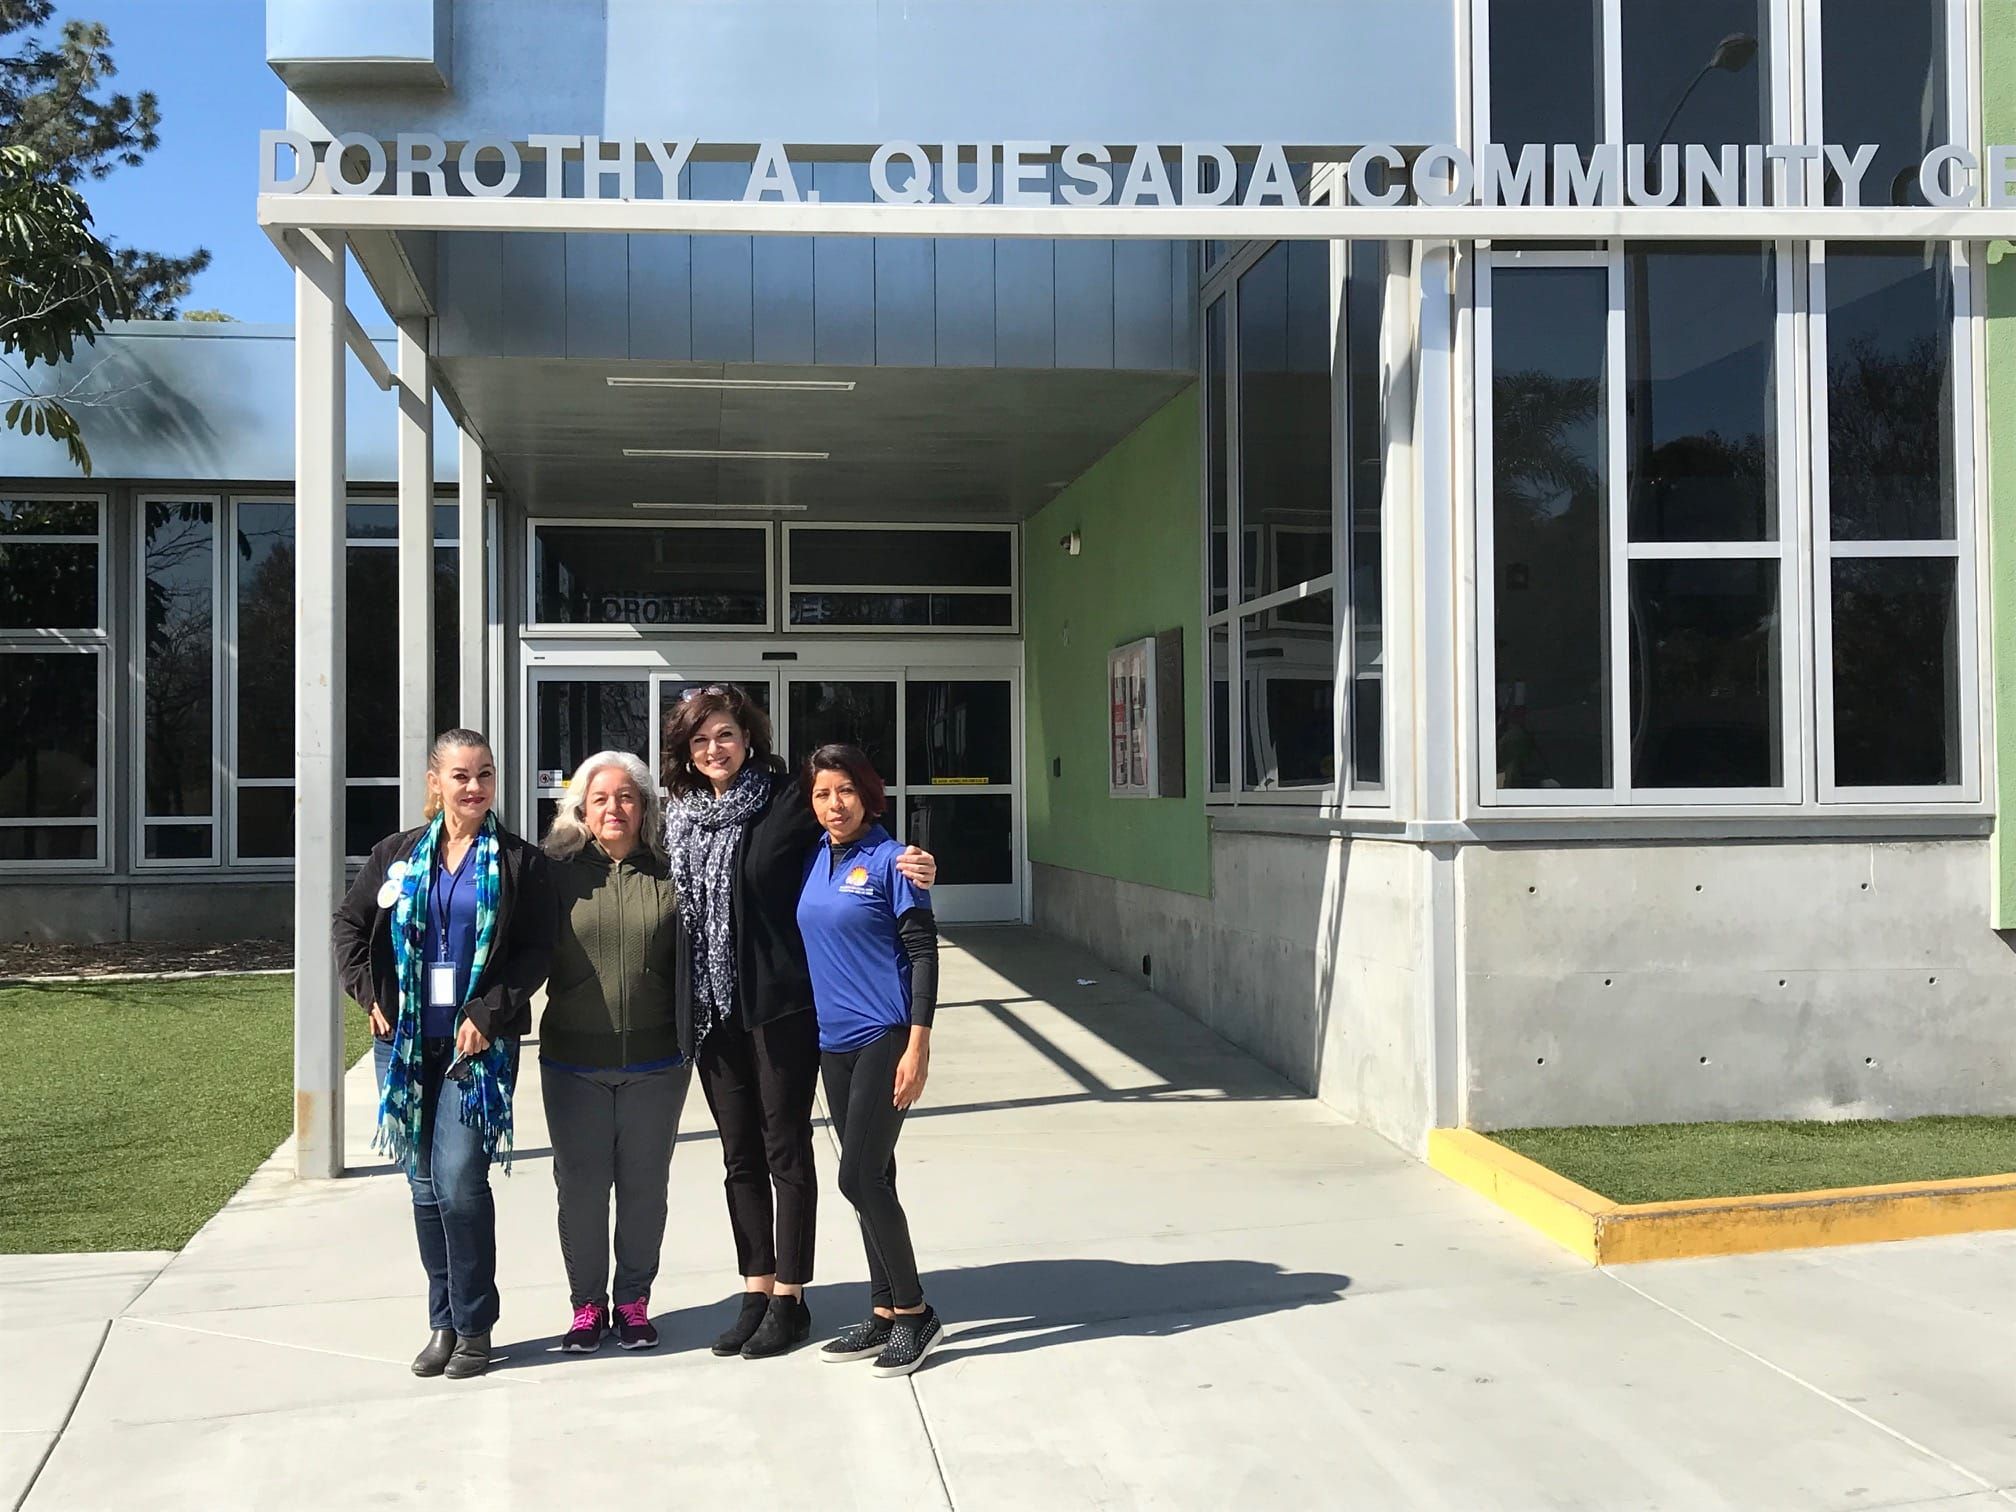 Community members Nora Beltran, Rosario Santillan, and Rosalba Martinez, along with Christina Munoz, senior supervisor, Dorothy A. Quesada Community Center (third from left), all play an active role in the Ontario HEAL Zone